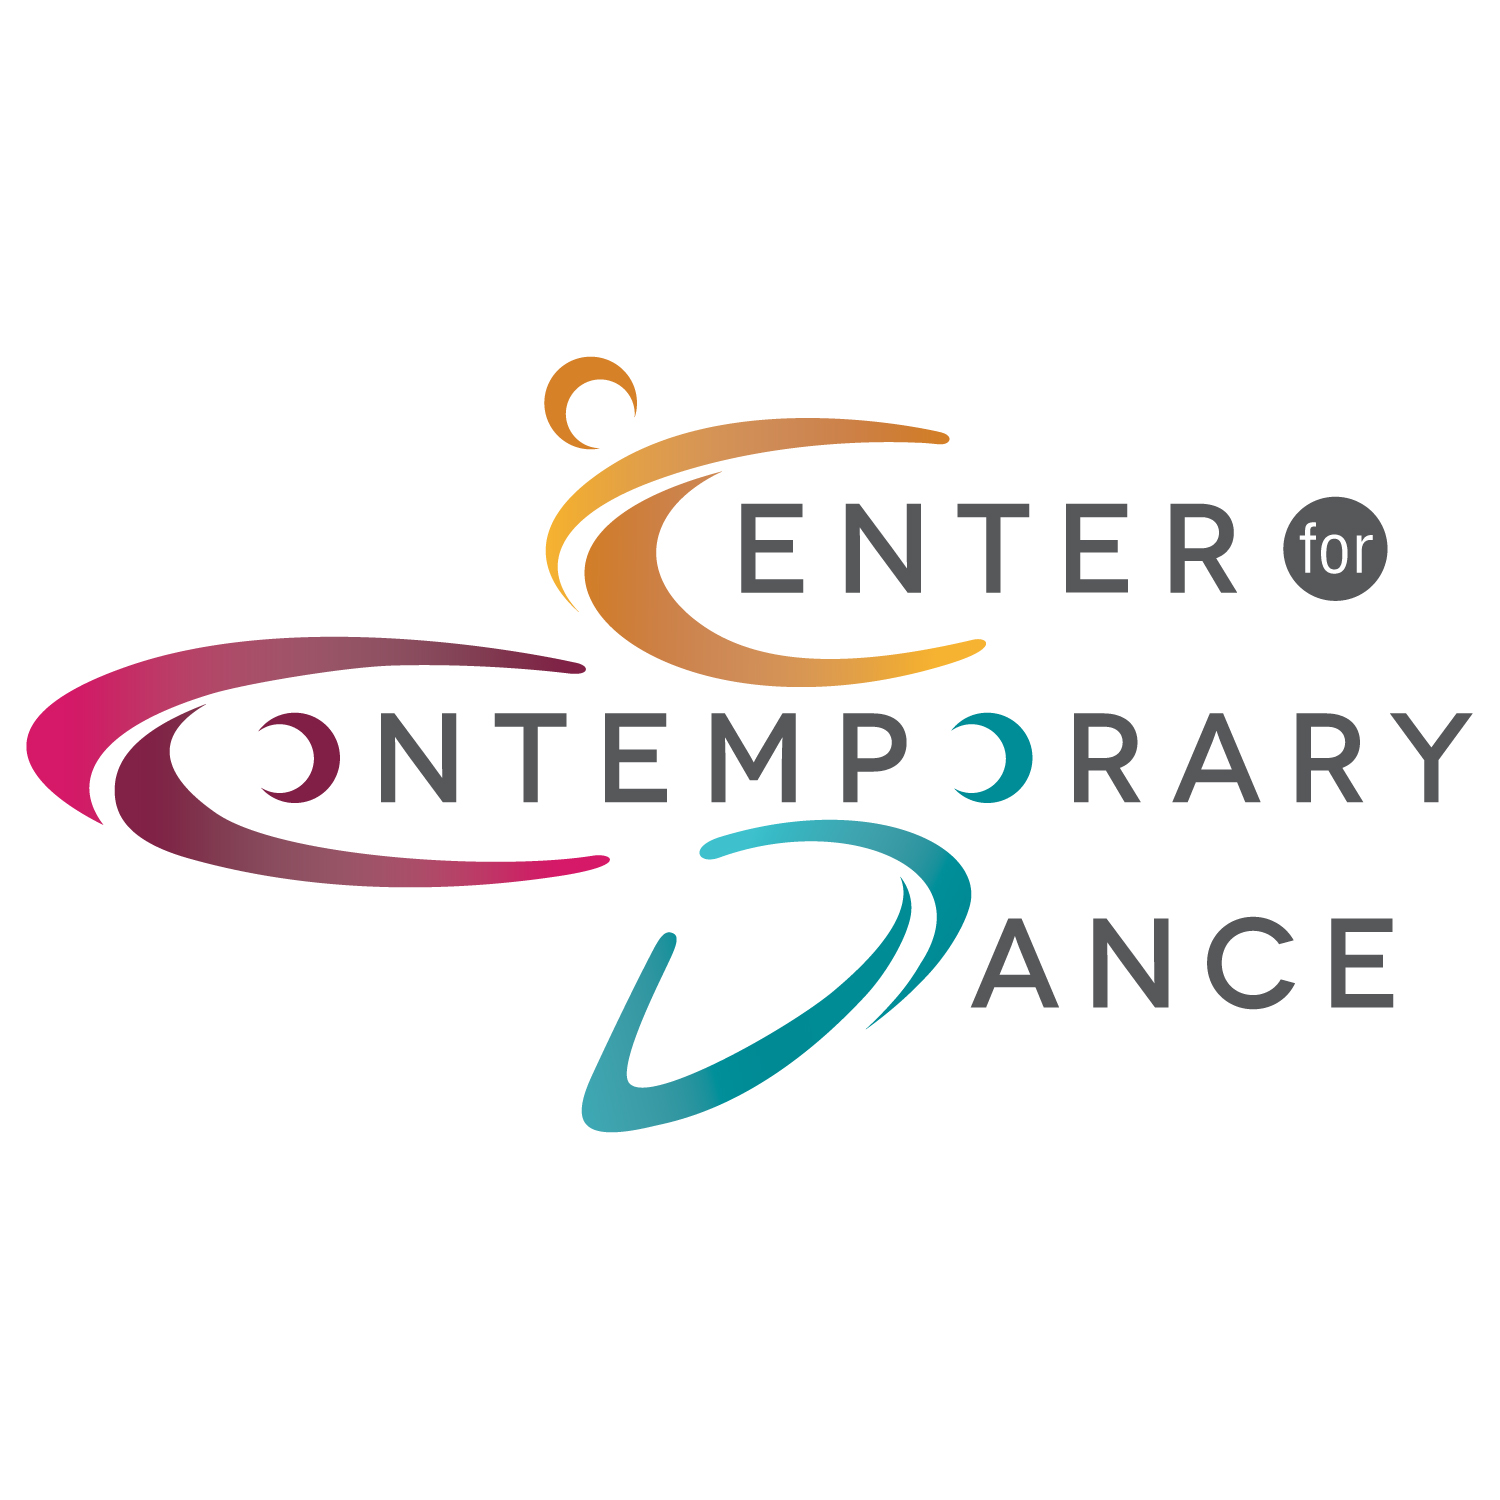 THE CENTER FOR CONTEMPORARY DANCE INC